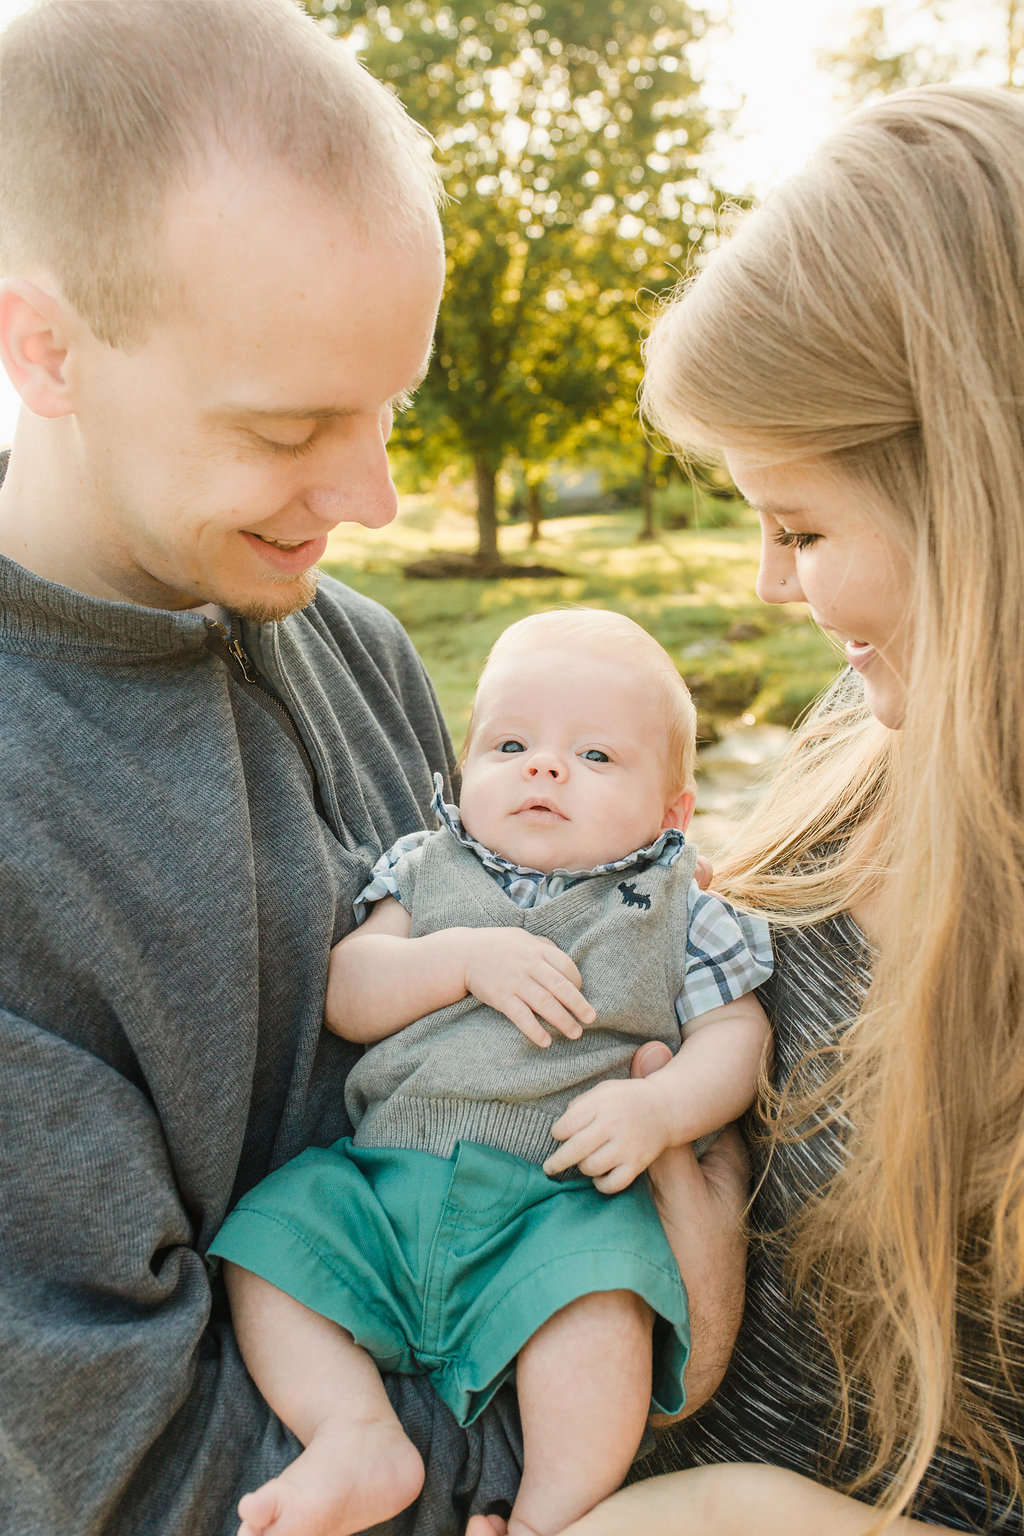 Thompson's-Station-Tennessee-Family-Photos-Baby-3-months-Isaac-Fitzmorris-16